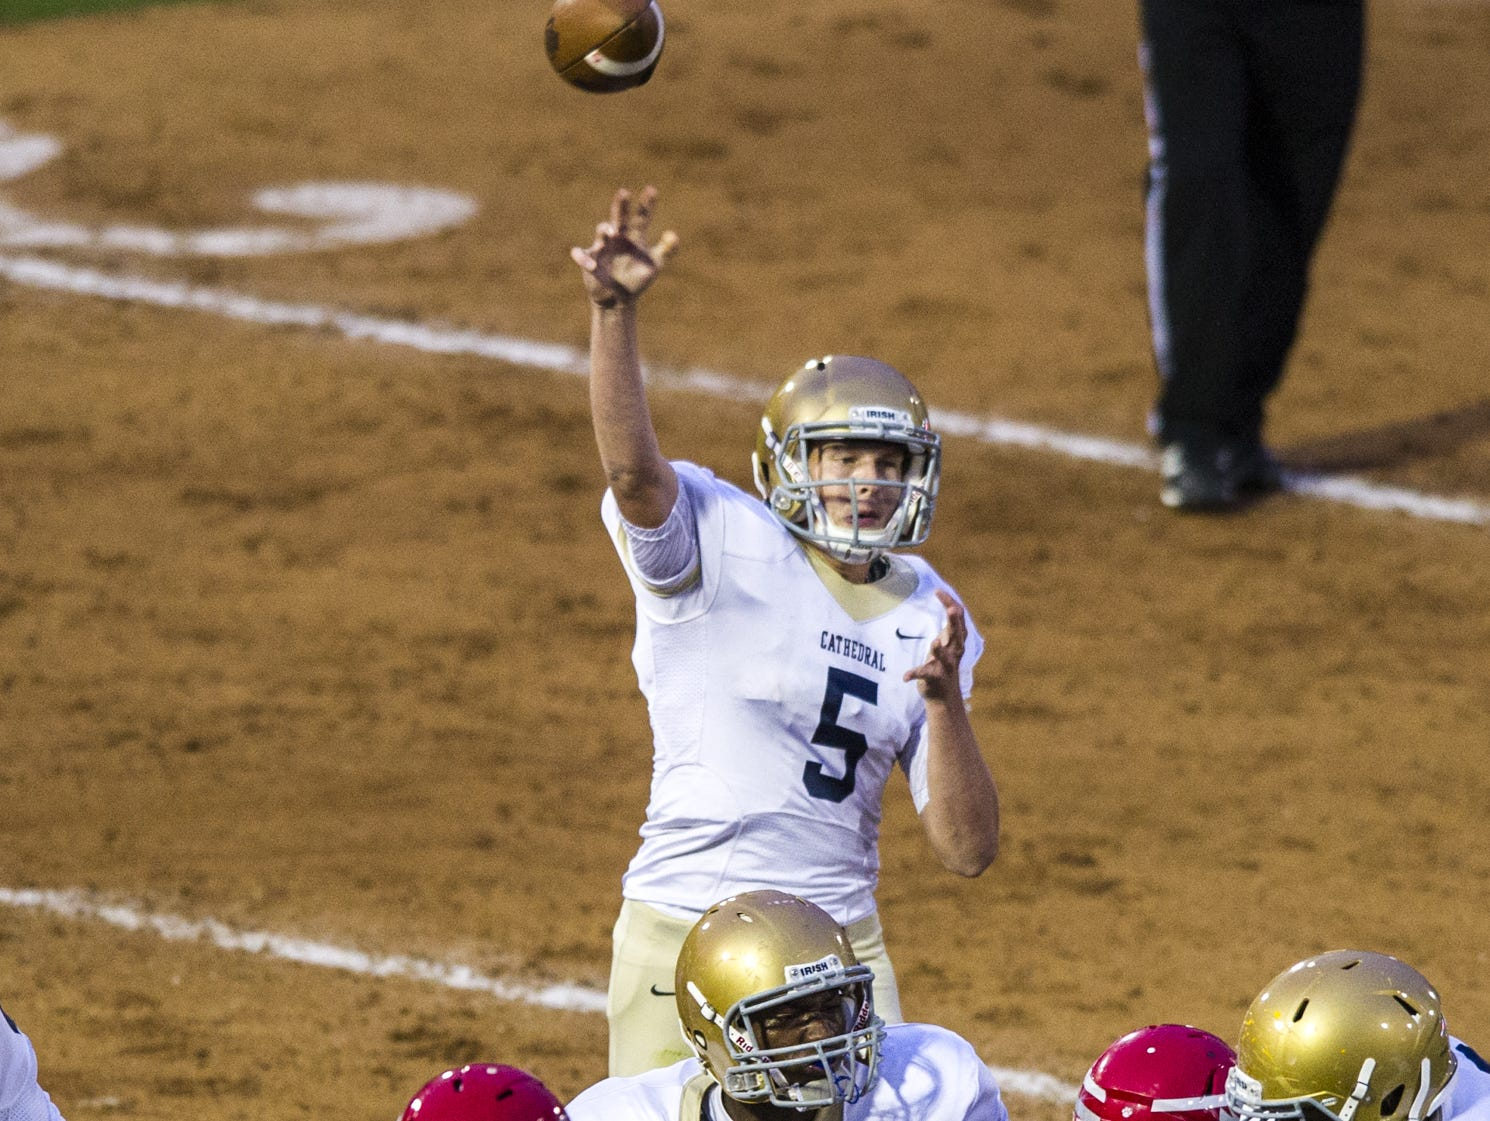 Cathedral High School senior quarterback Max Bortenschlager (5) passes the ball out of the backfield during the first half of action of an inaugural IHSAA varsity football game being played at Victory Field in Indianapolis, Friday, October 2, 2015.